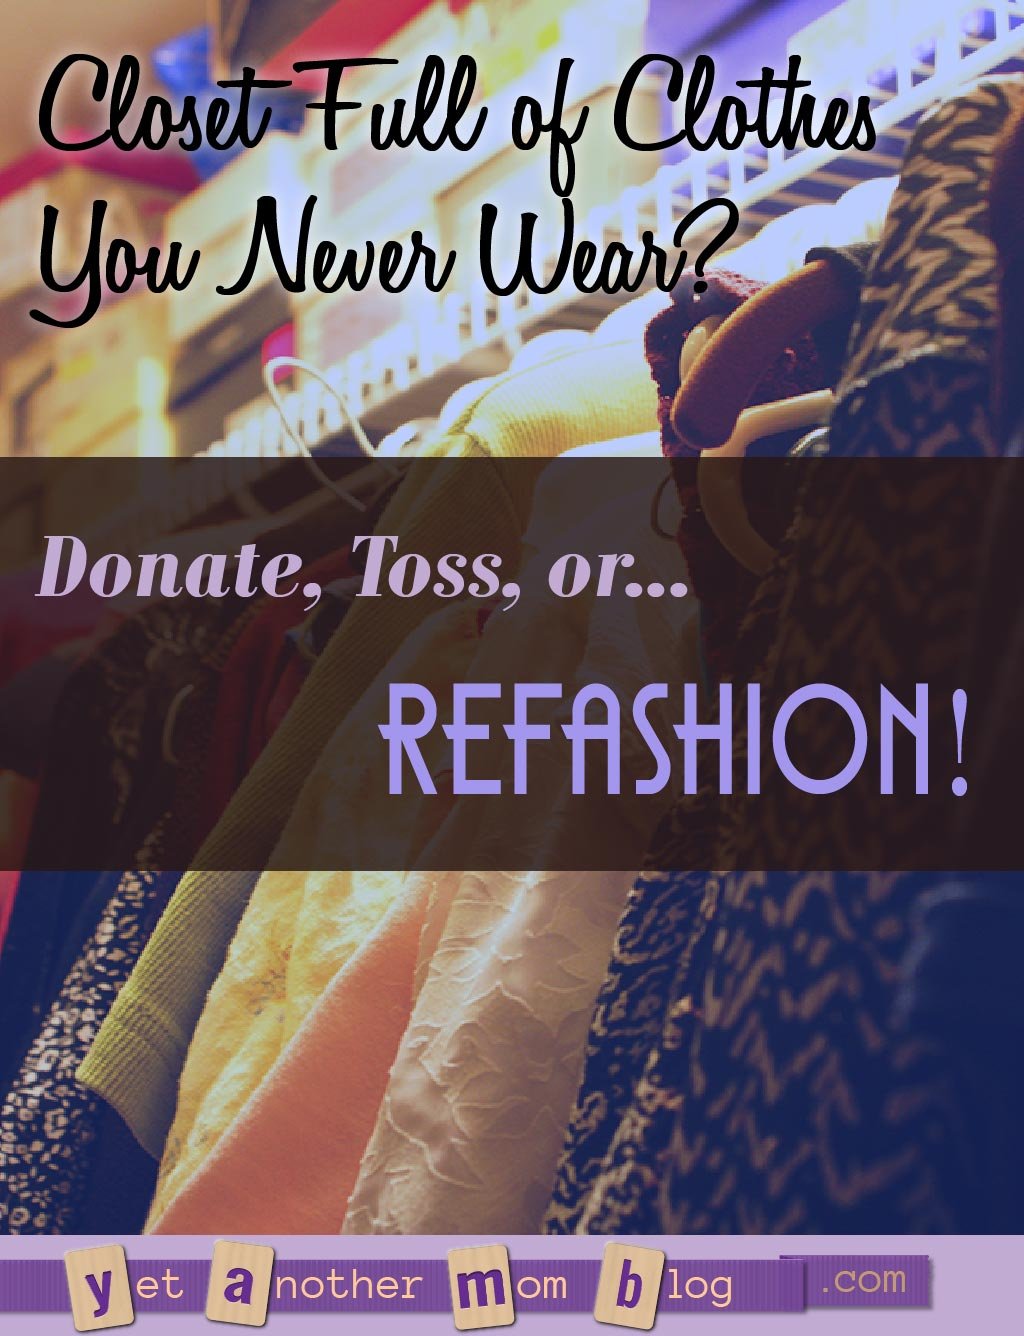 Closet Full of Clothes You Never Wear? Donate, Toss, or REFASHION!